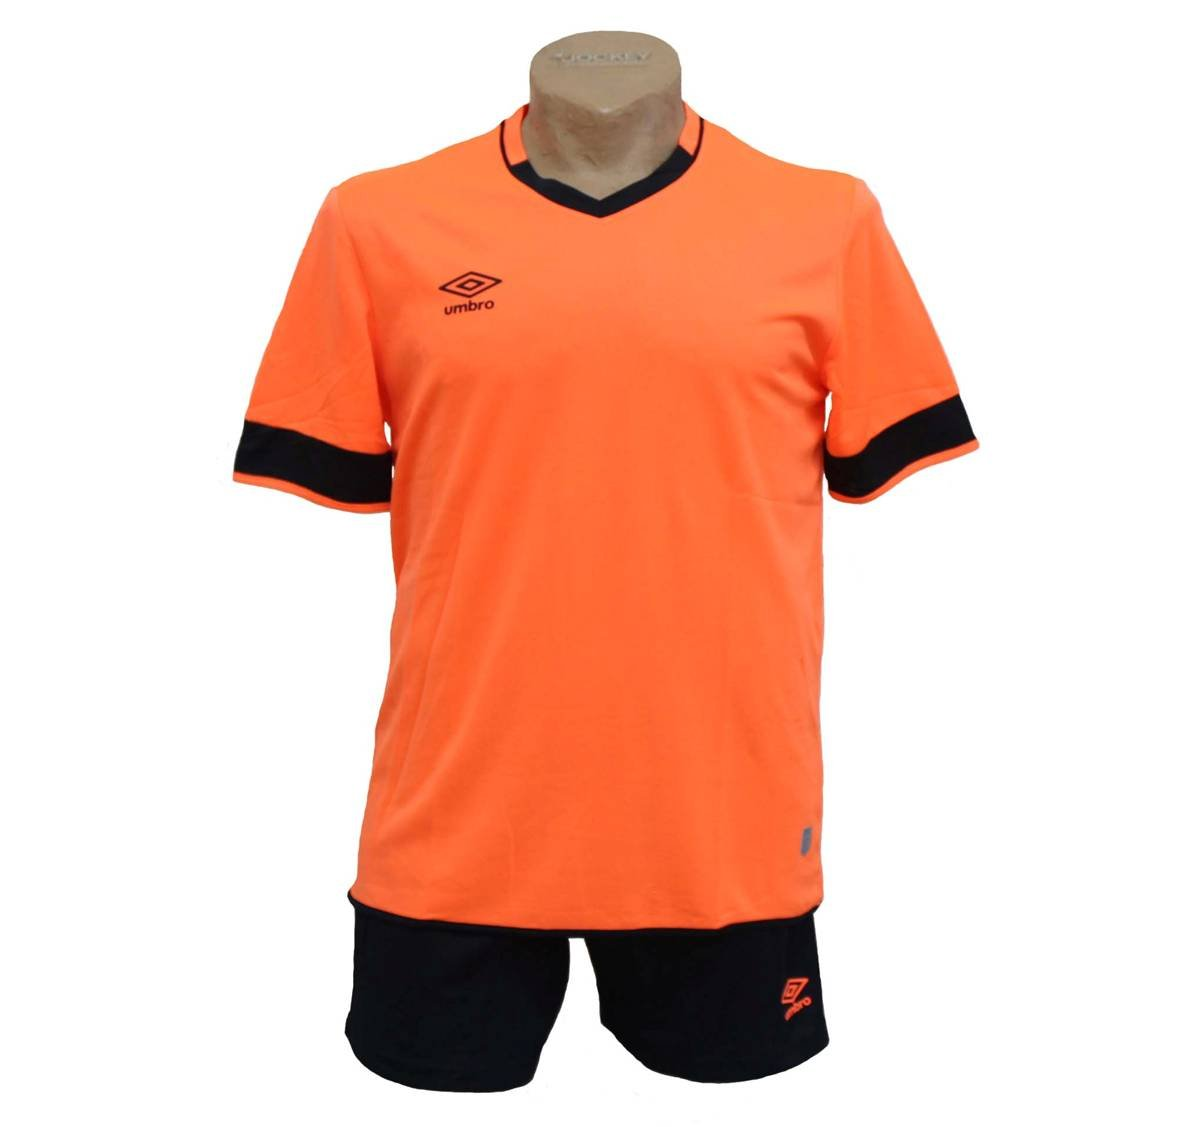 0277ddae45e8 Umbro Football Kit  Orange Black